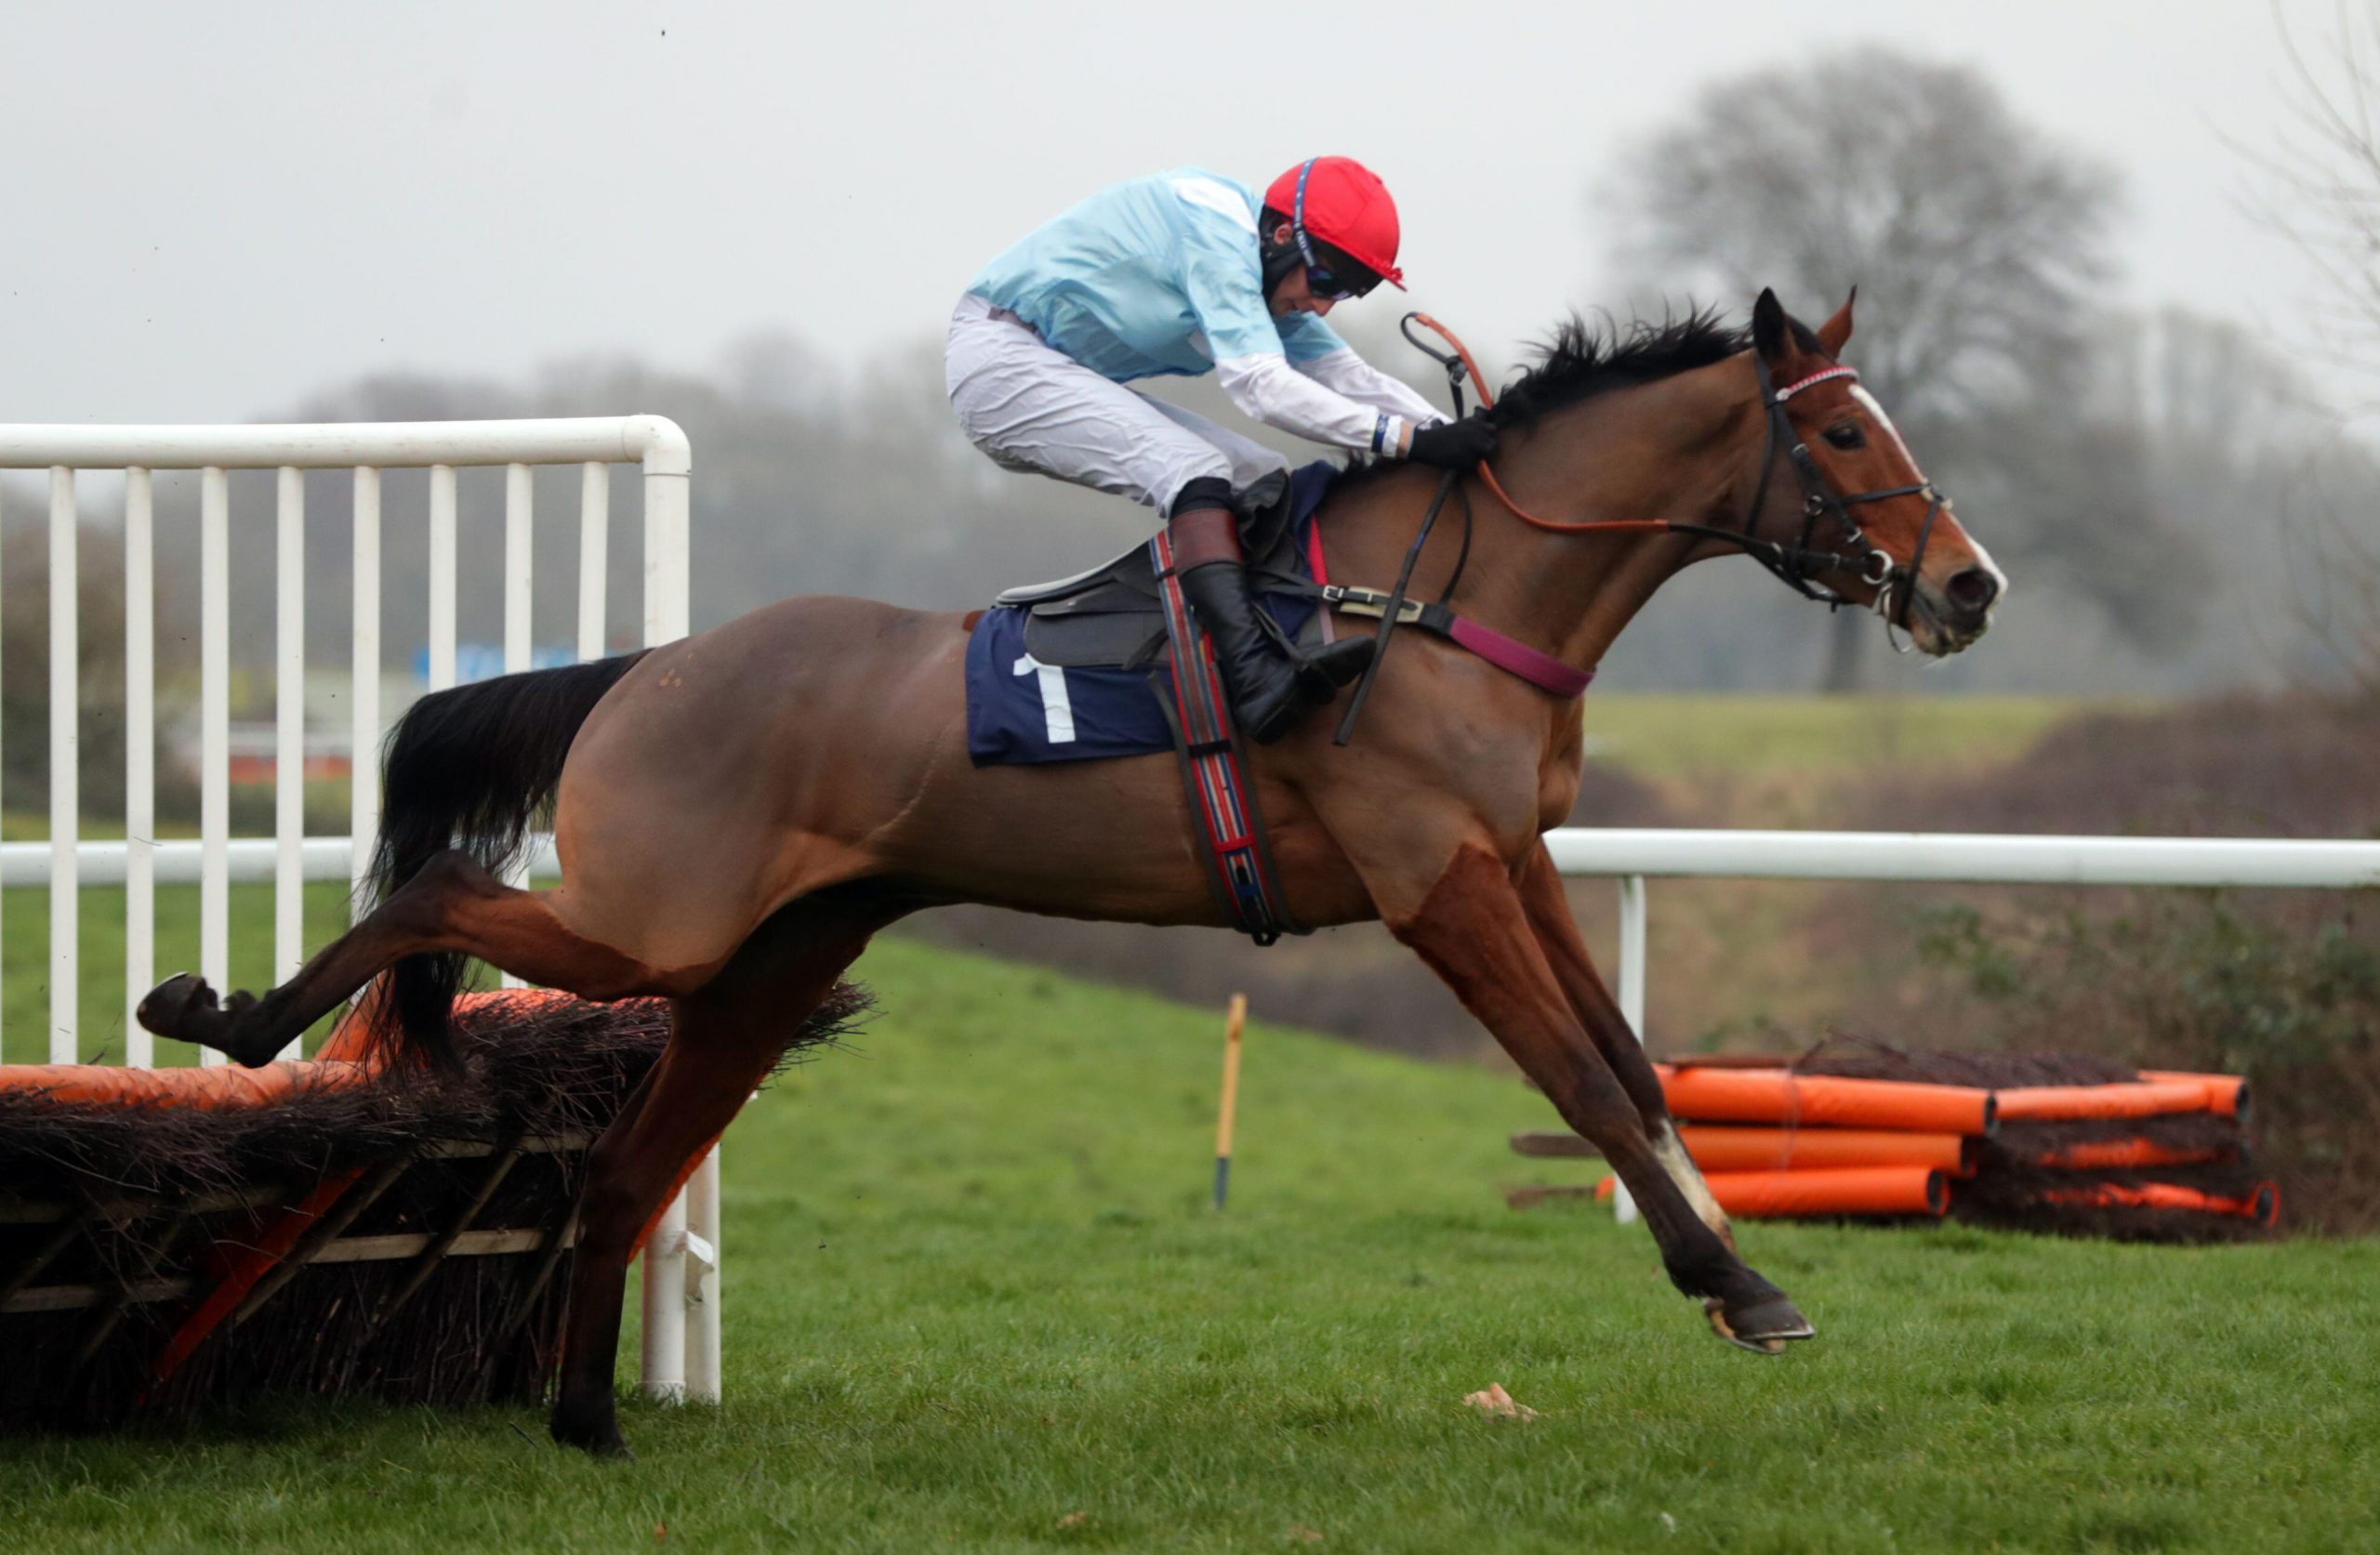 Witness Protection and James Best winning at Chepstow Racecourse